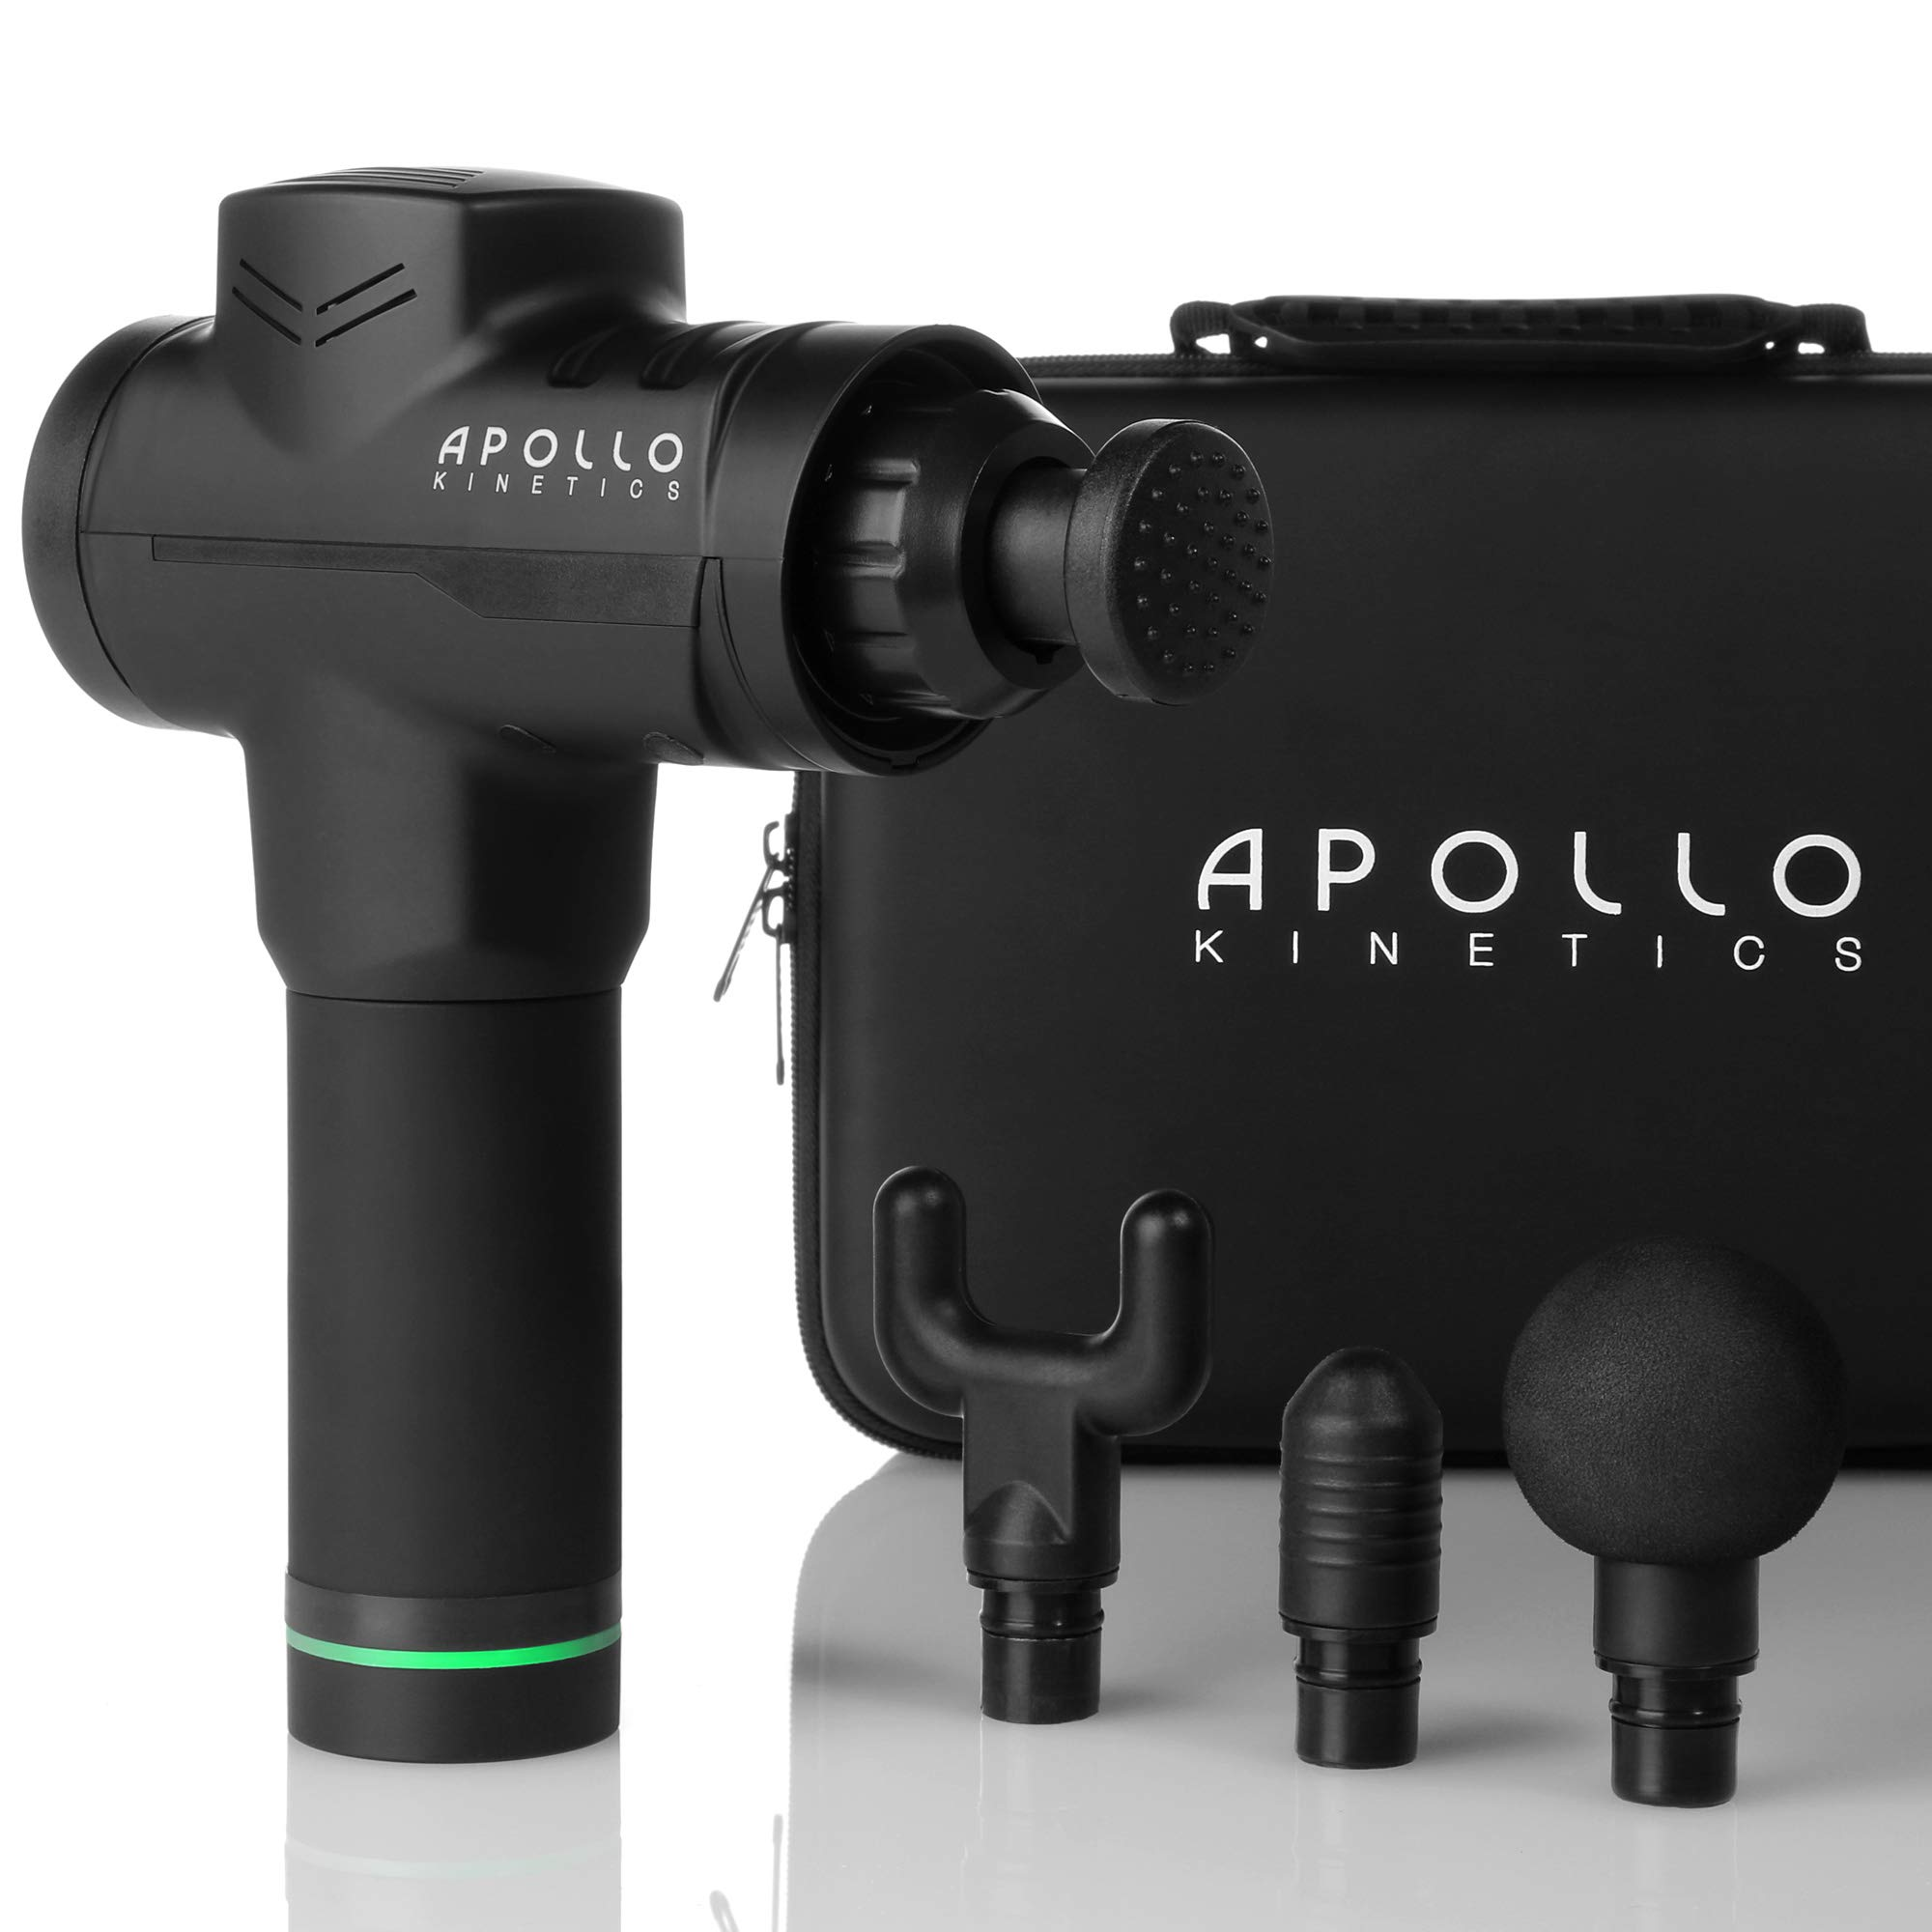 Apollo Kinetics Portable Electric Deep Tissue Percussion Massage Gun - Hand Held Cordless Design Full Body Muscle Massager Drill, Pain Relief Recovery Stimulator, Carry Case & 4 Heads Included by Apollo Kinetics